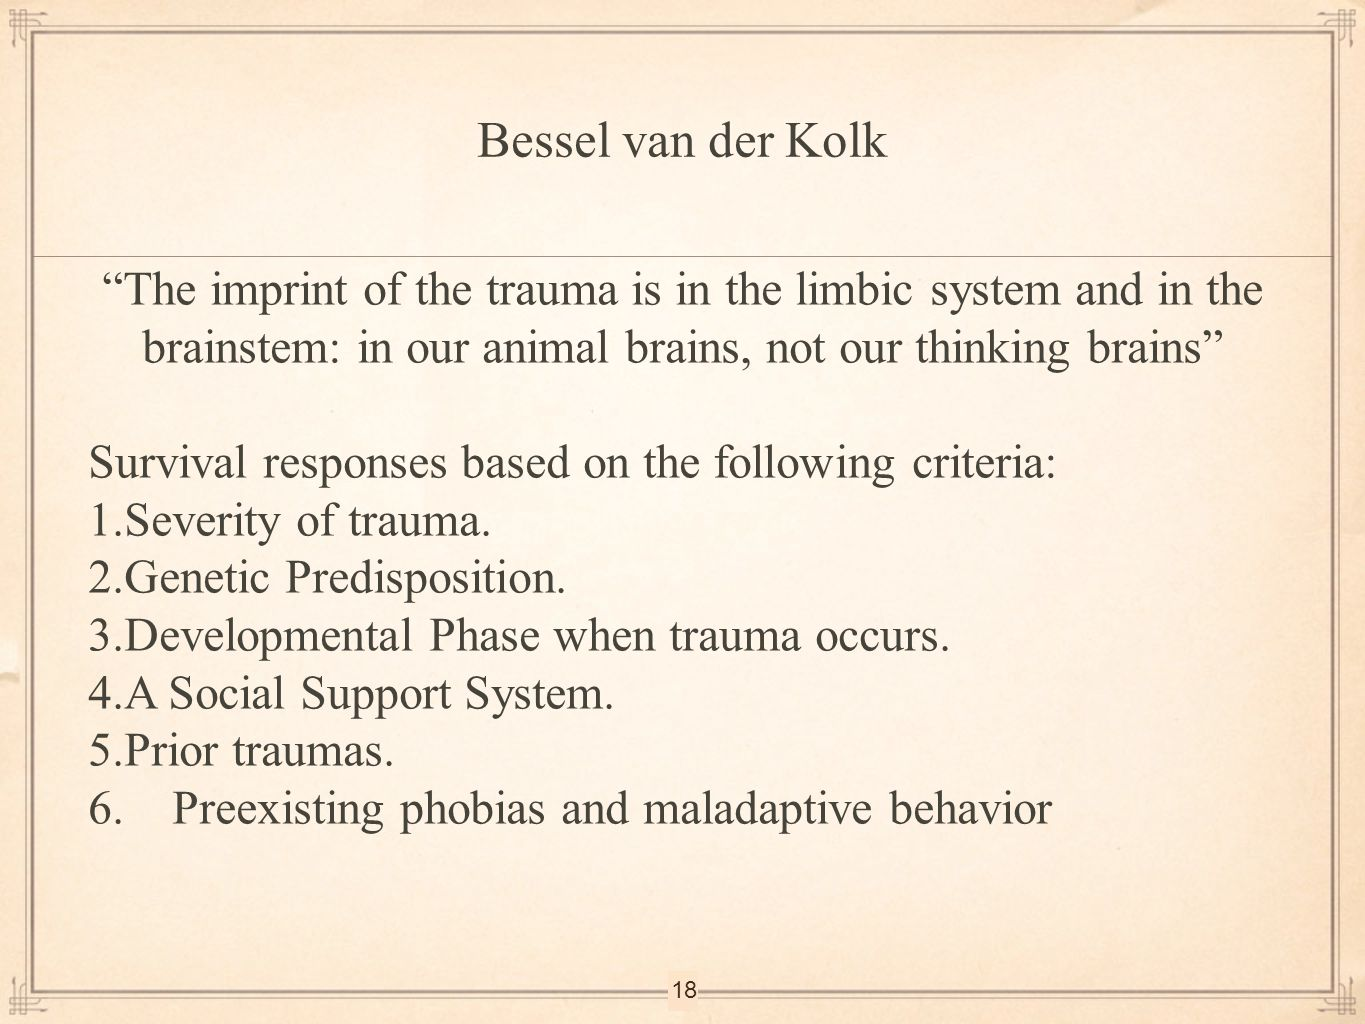 Bessel van der Kolk The imprint of the trauma is in the limbic system and in the brainstem: in our animal brains, not our thinking brains